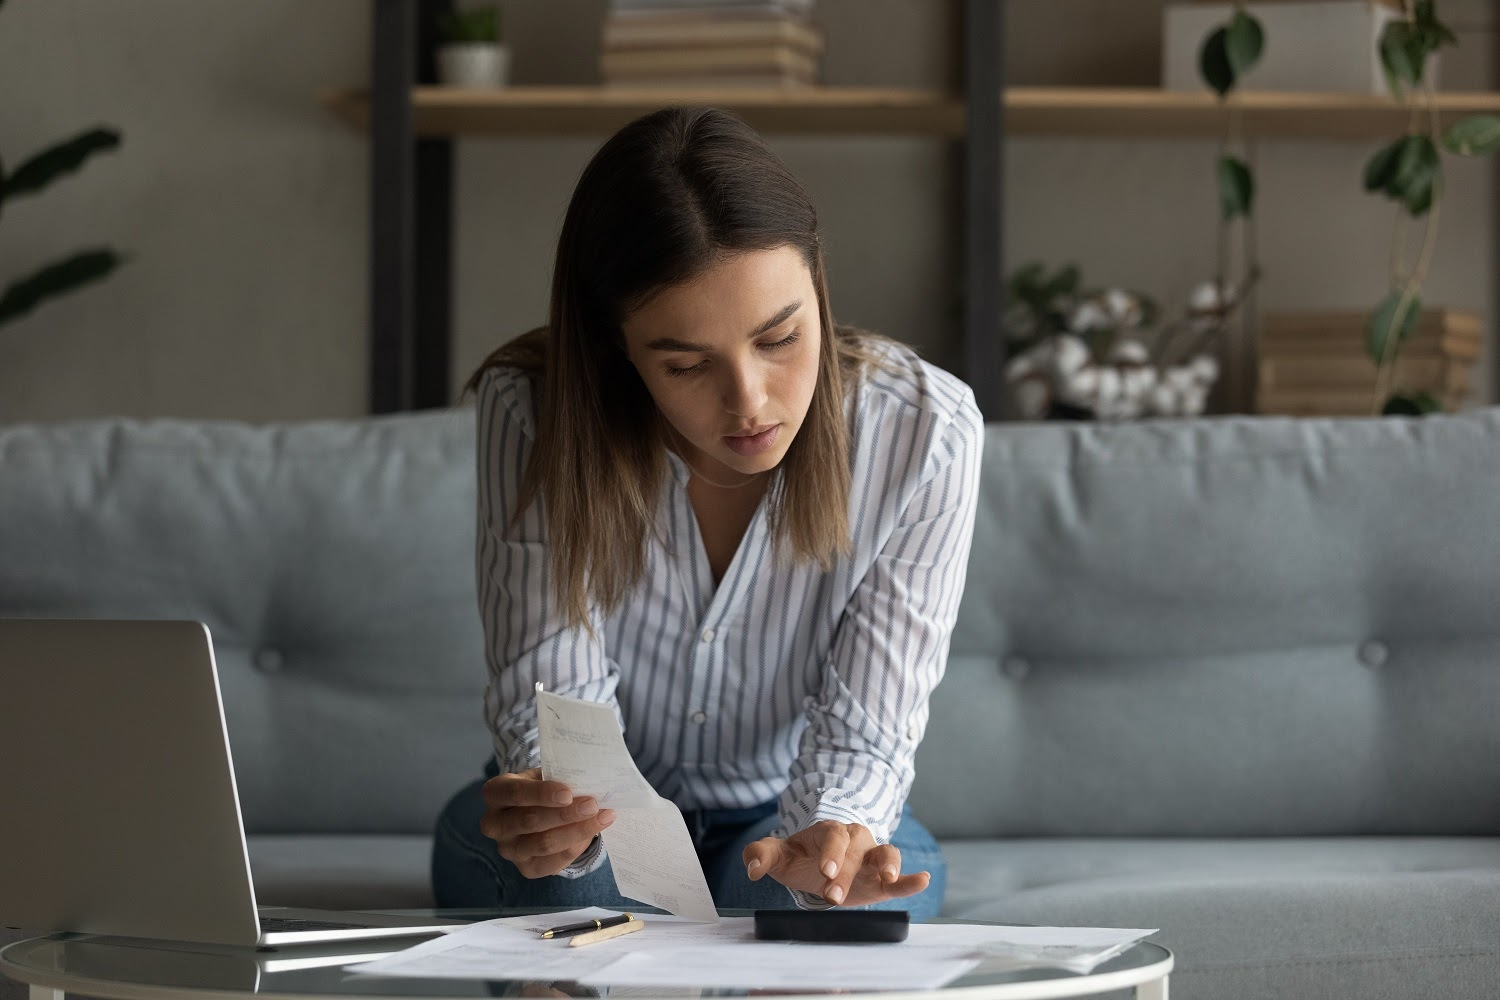 How to refinance credit card debt: A woman adds up receipts with a calculator